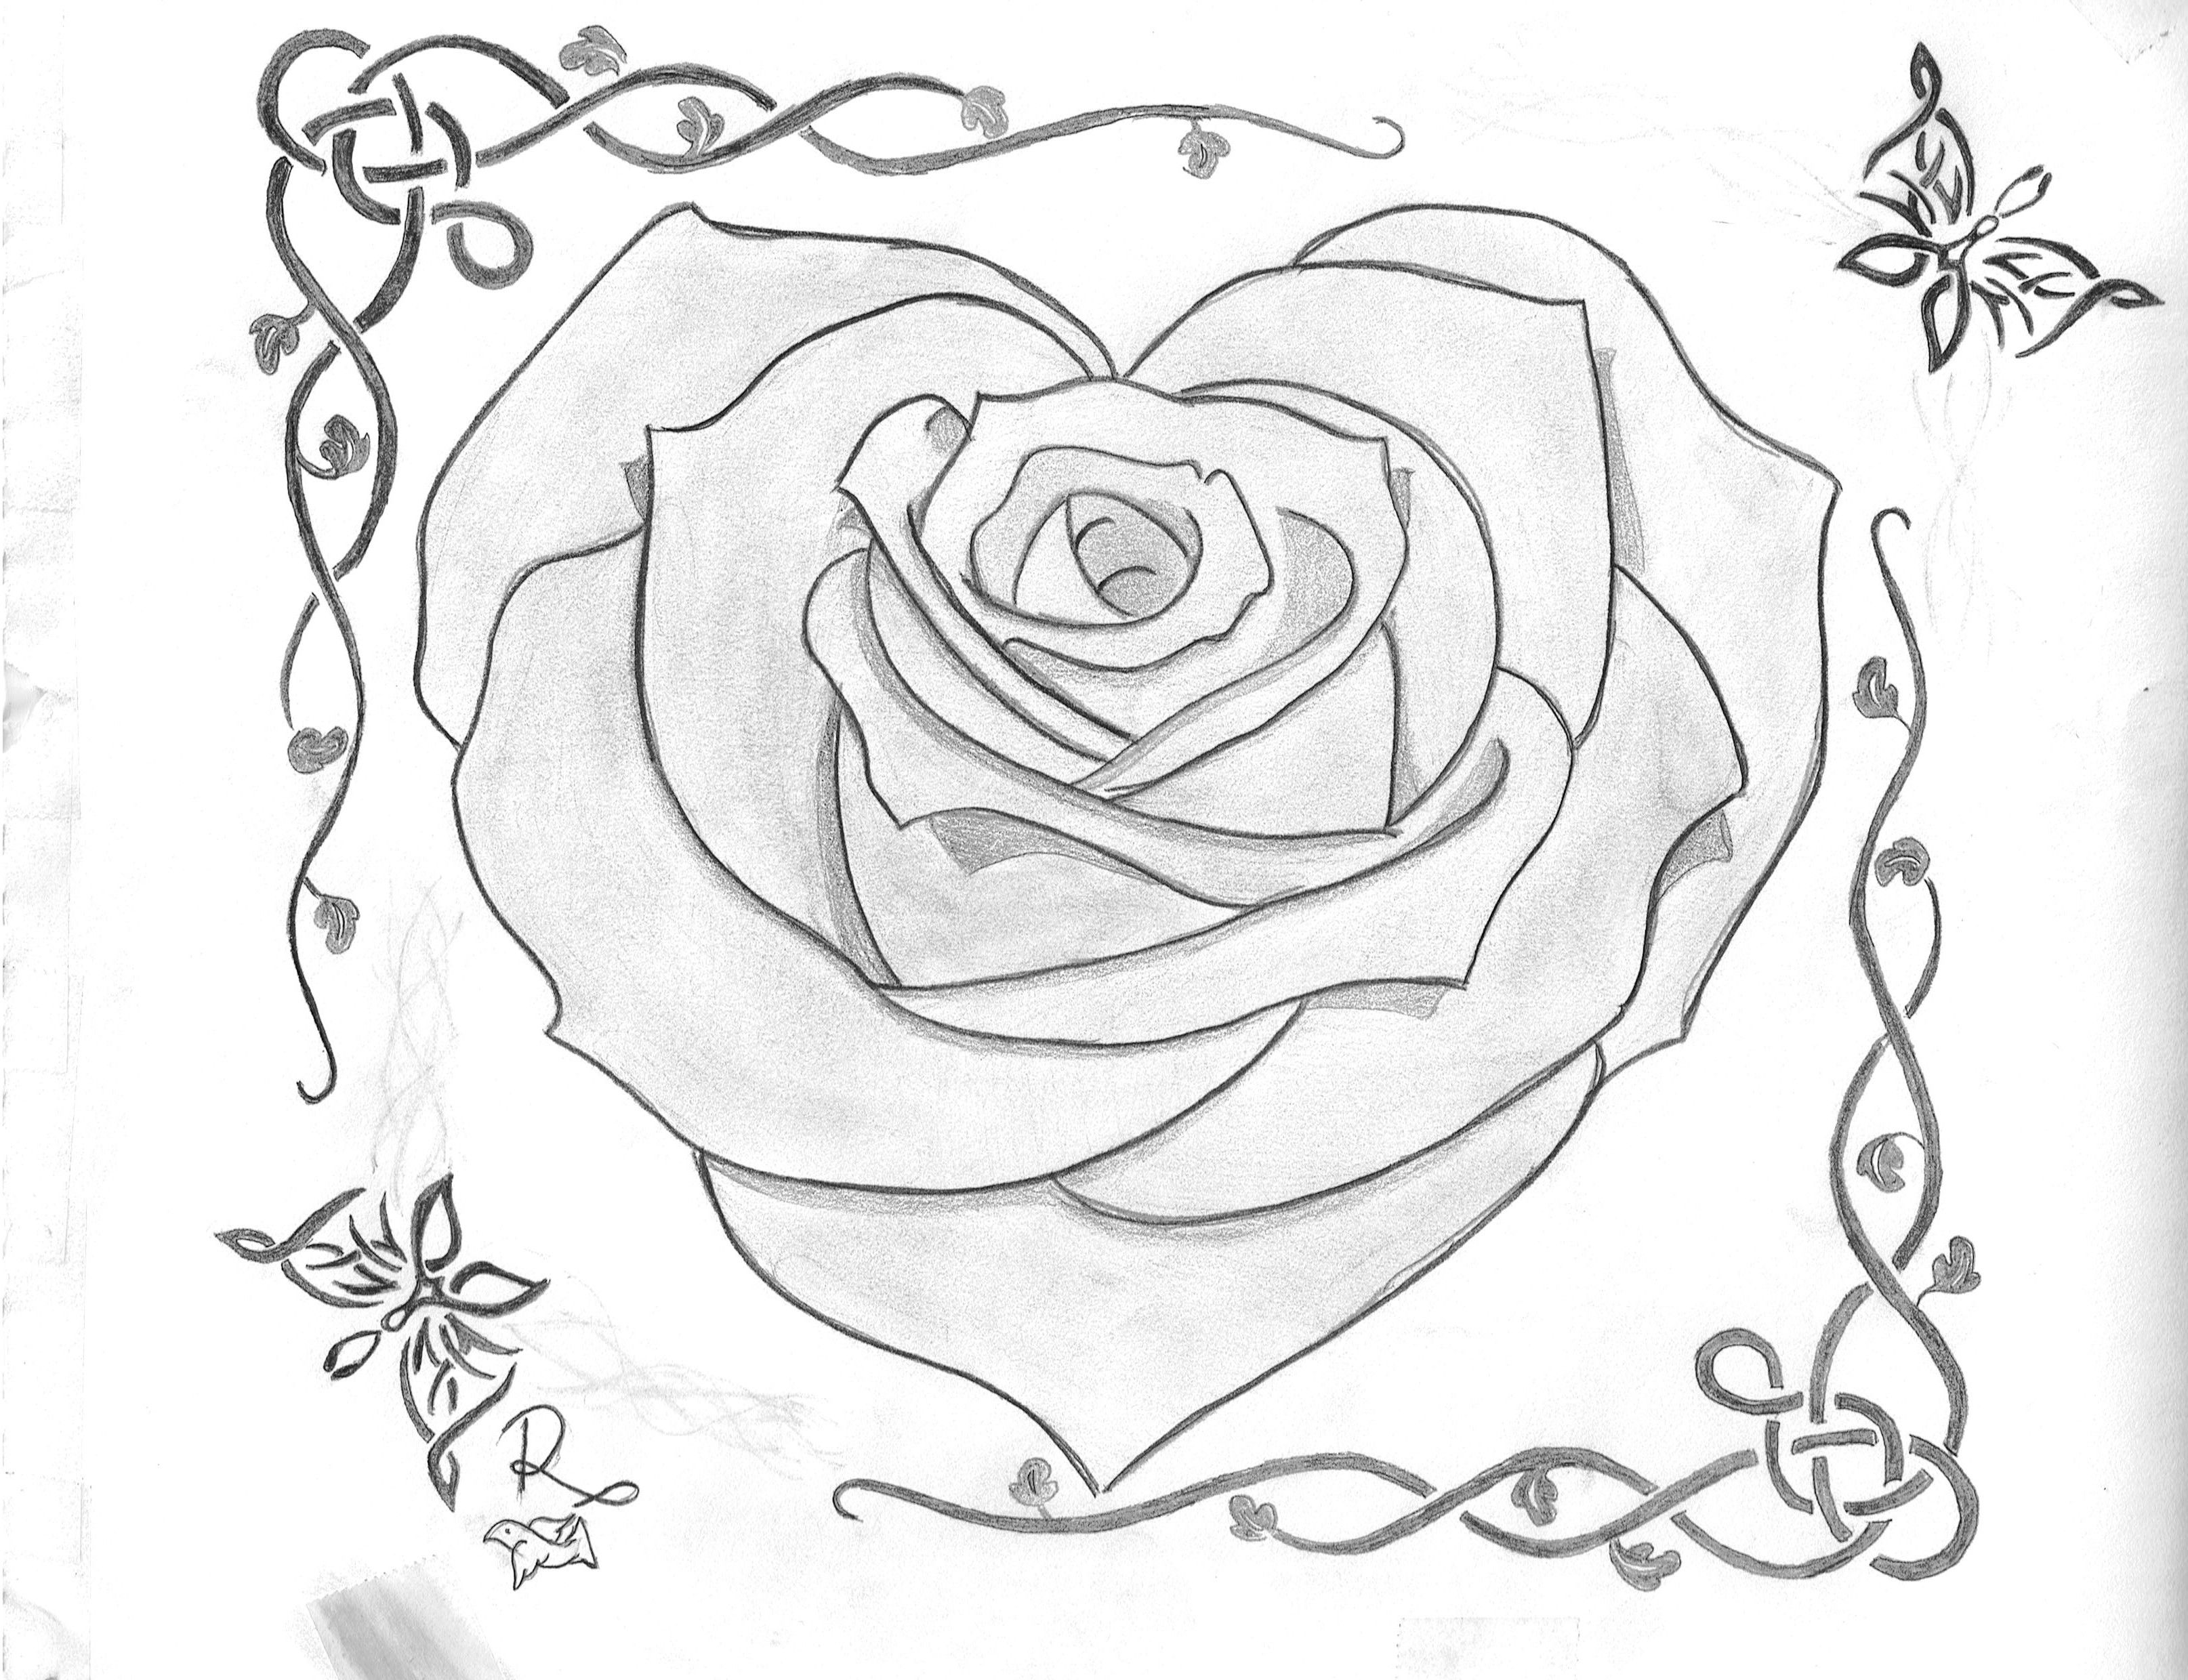 Rose Heart B&w Sketch How To Draw